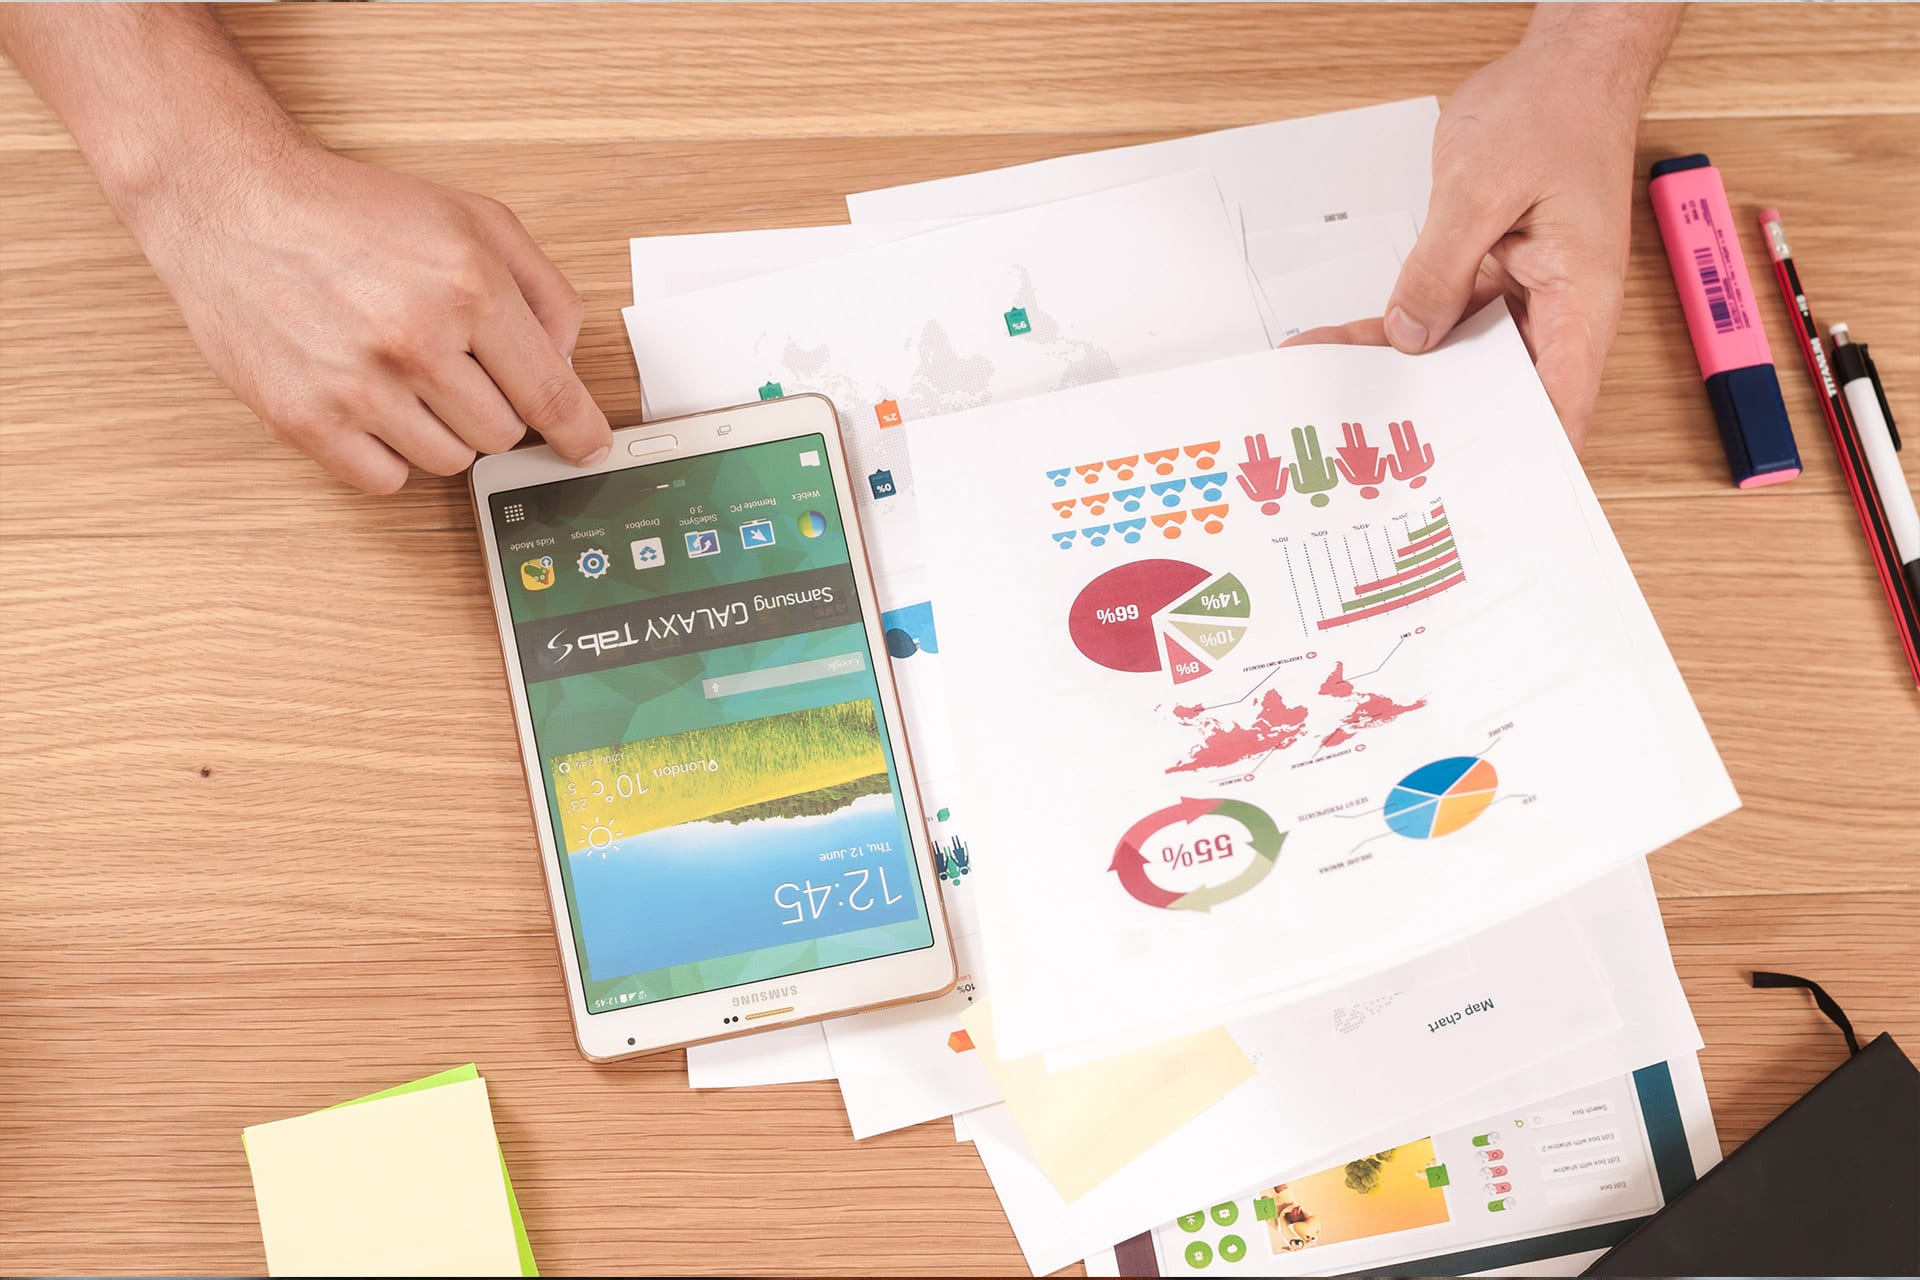 Comparing information from infographs beside large phone or small tablet